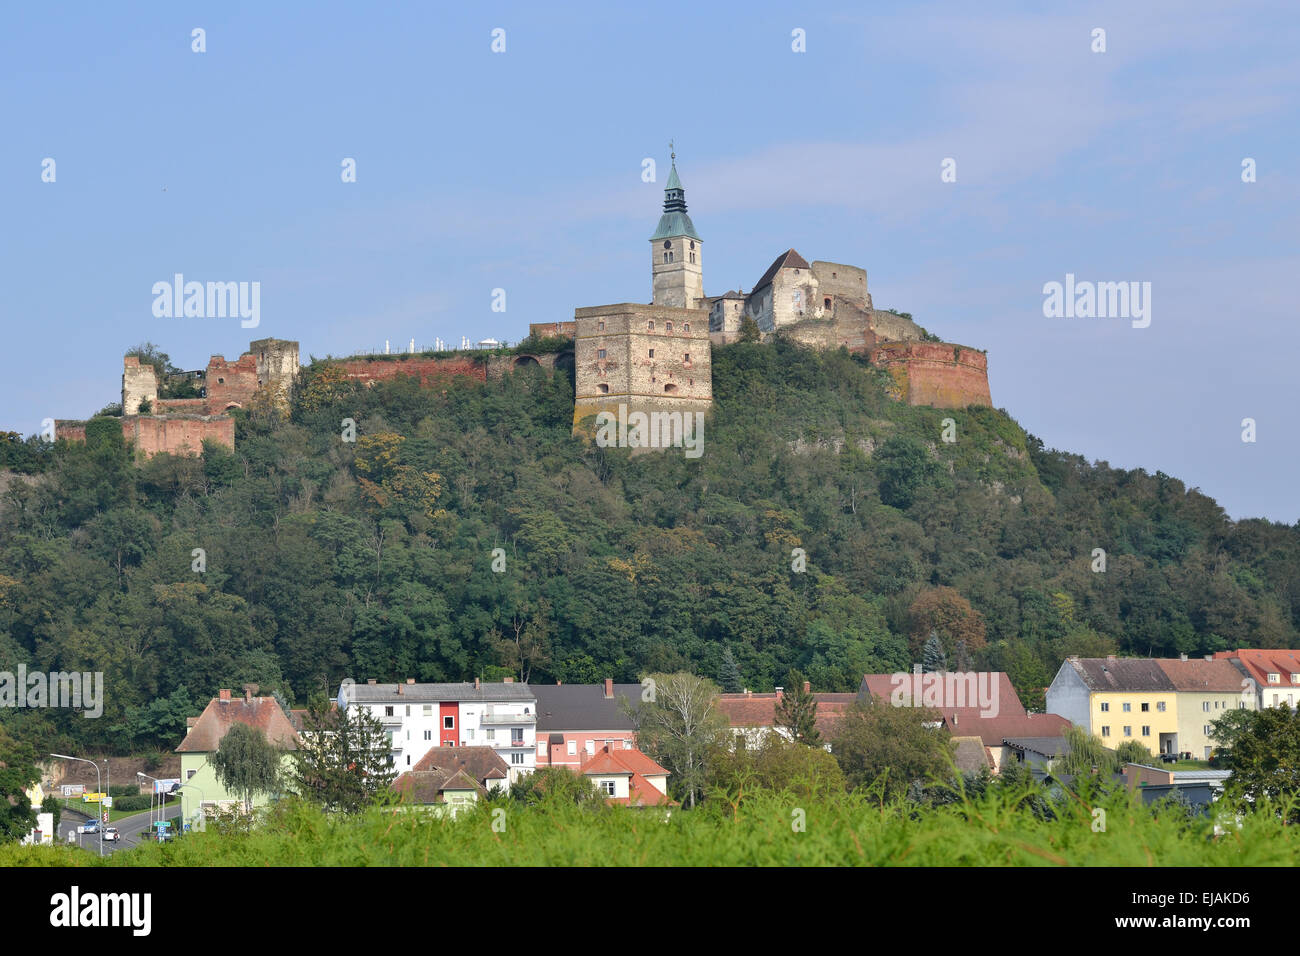 View of Castle Guessing in Burgenland - Stock Image